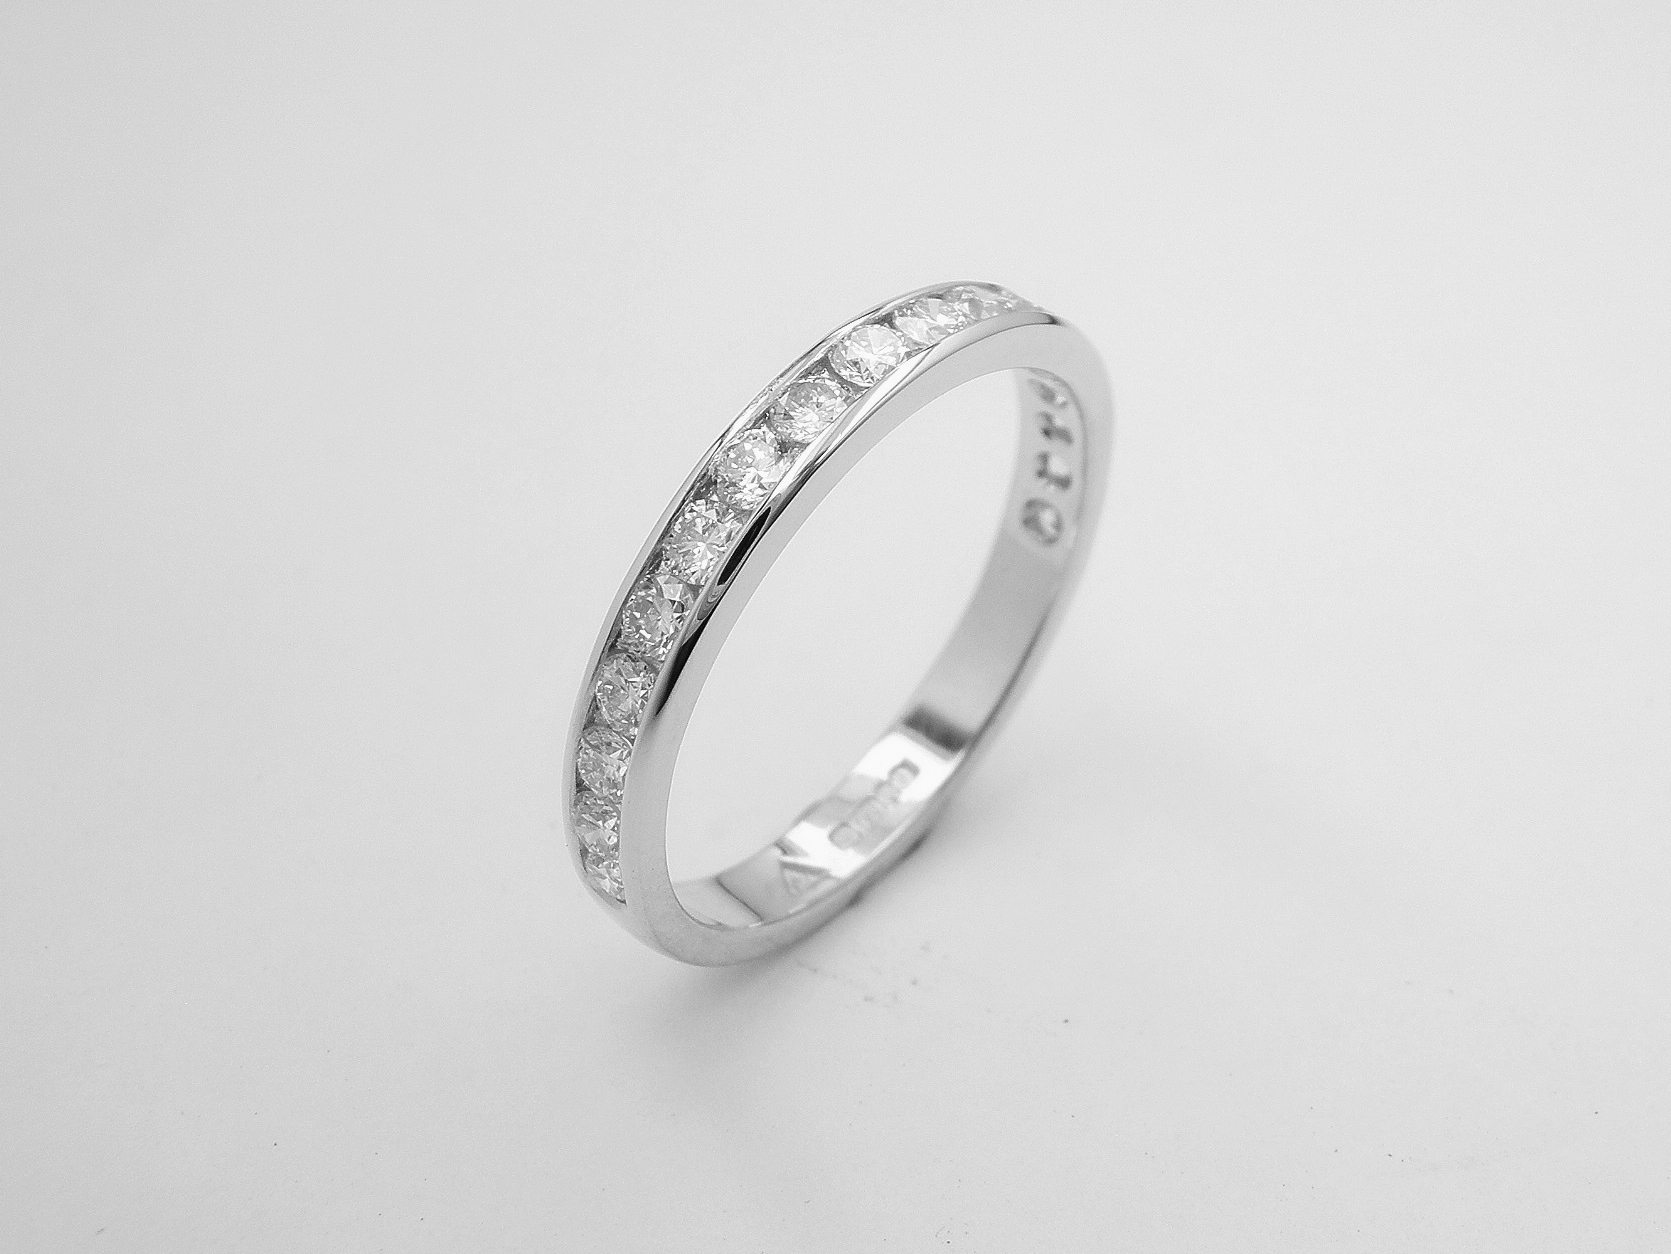 Platinum & channel set round brilliant cut diamond wedding ring set to 55% cover.